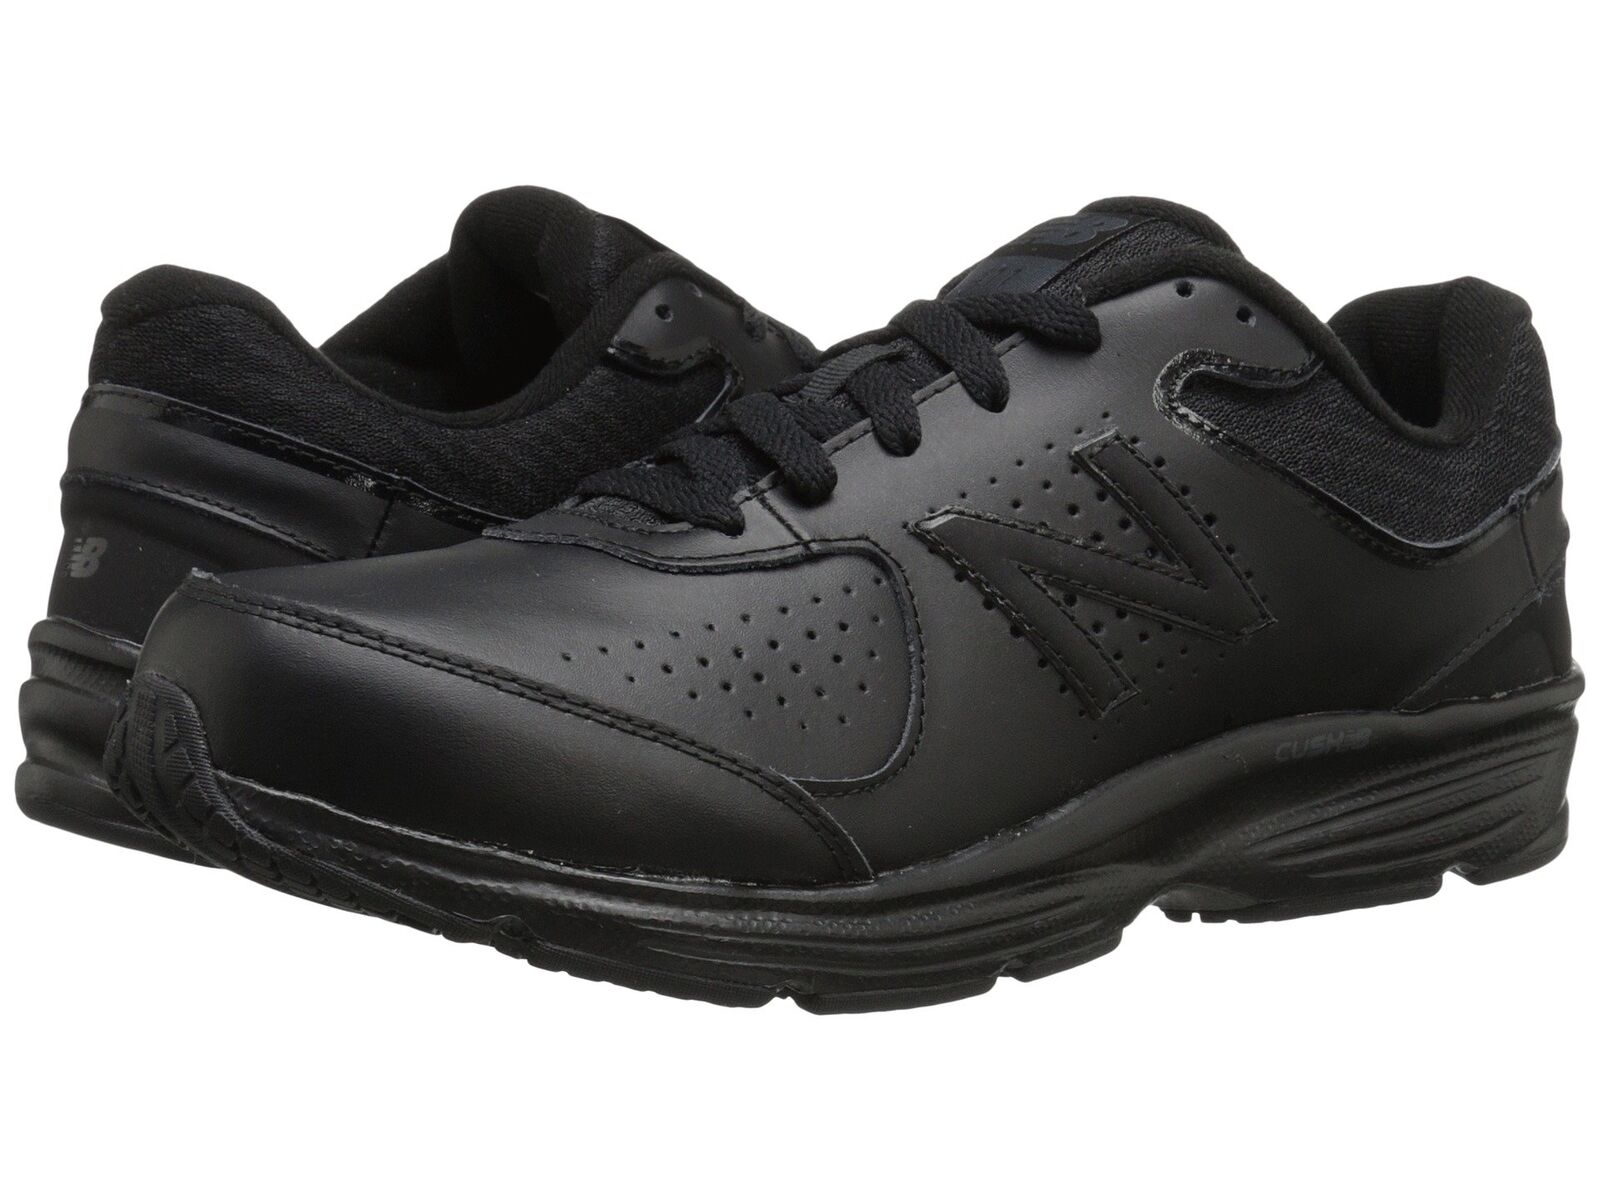 NEW BALANCE Mens 'MW411v2' Black Walking Sneakers Sz 8 EE - 232310